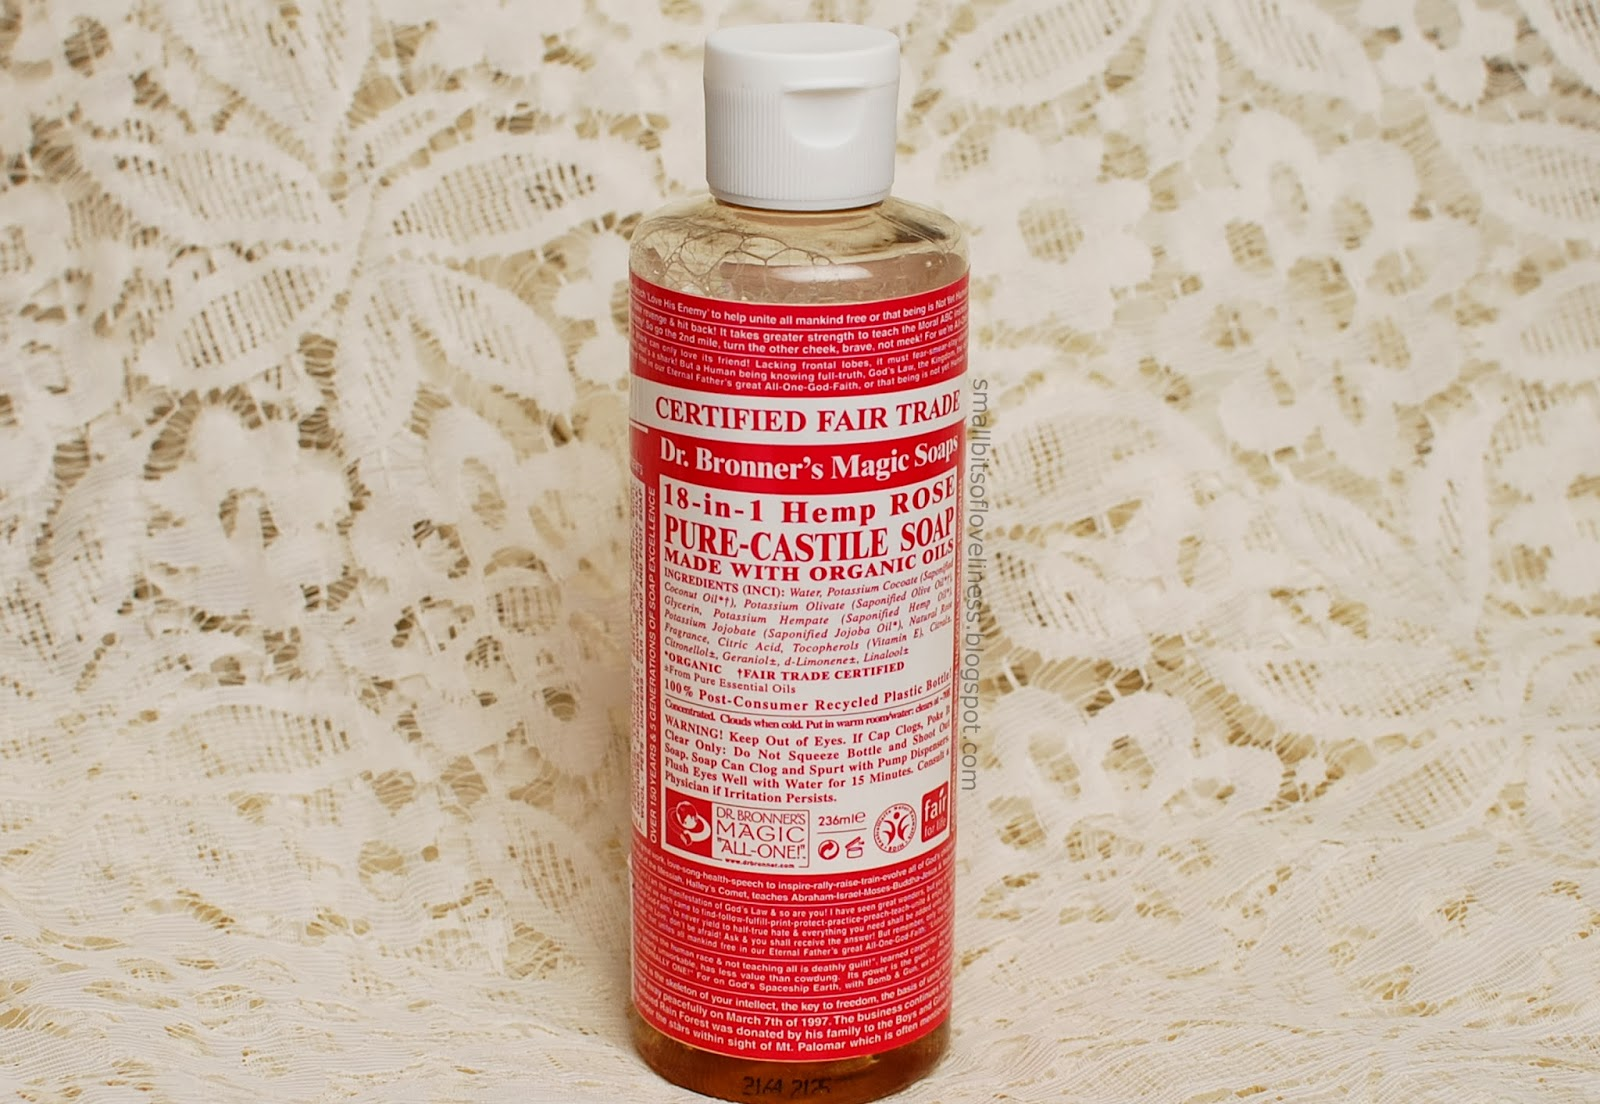 Dr. Bronner's Pure Castile Liquid Soap Rose